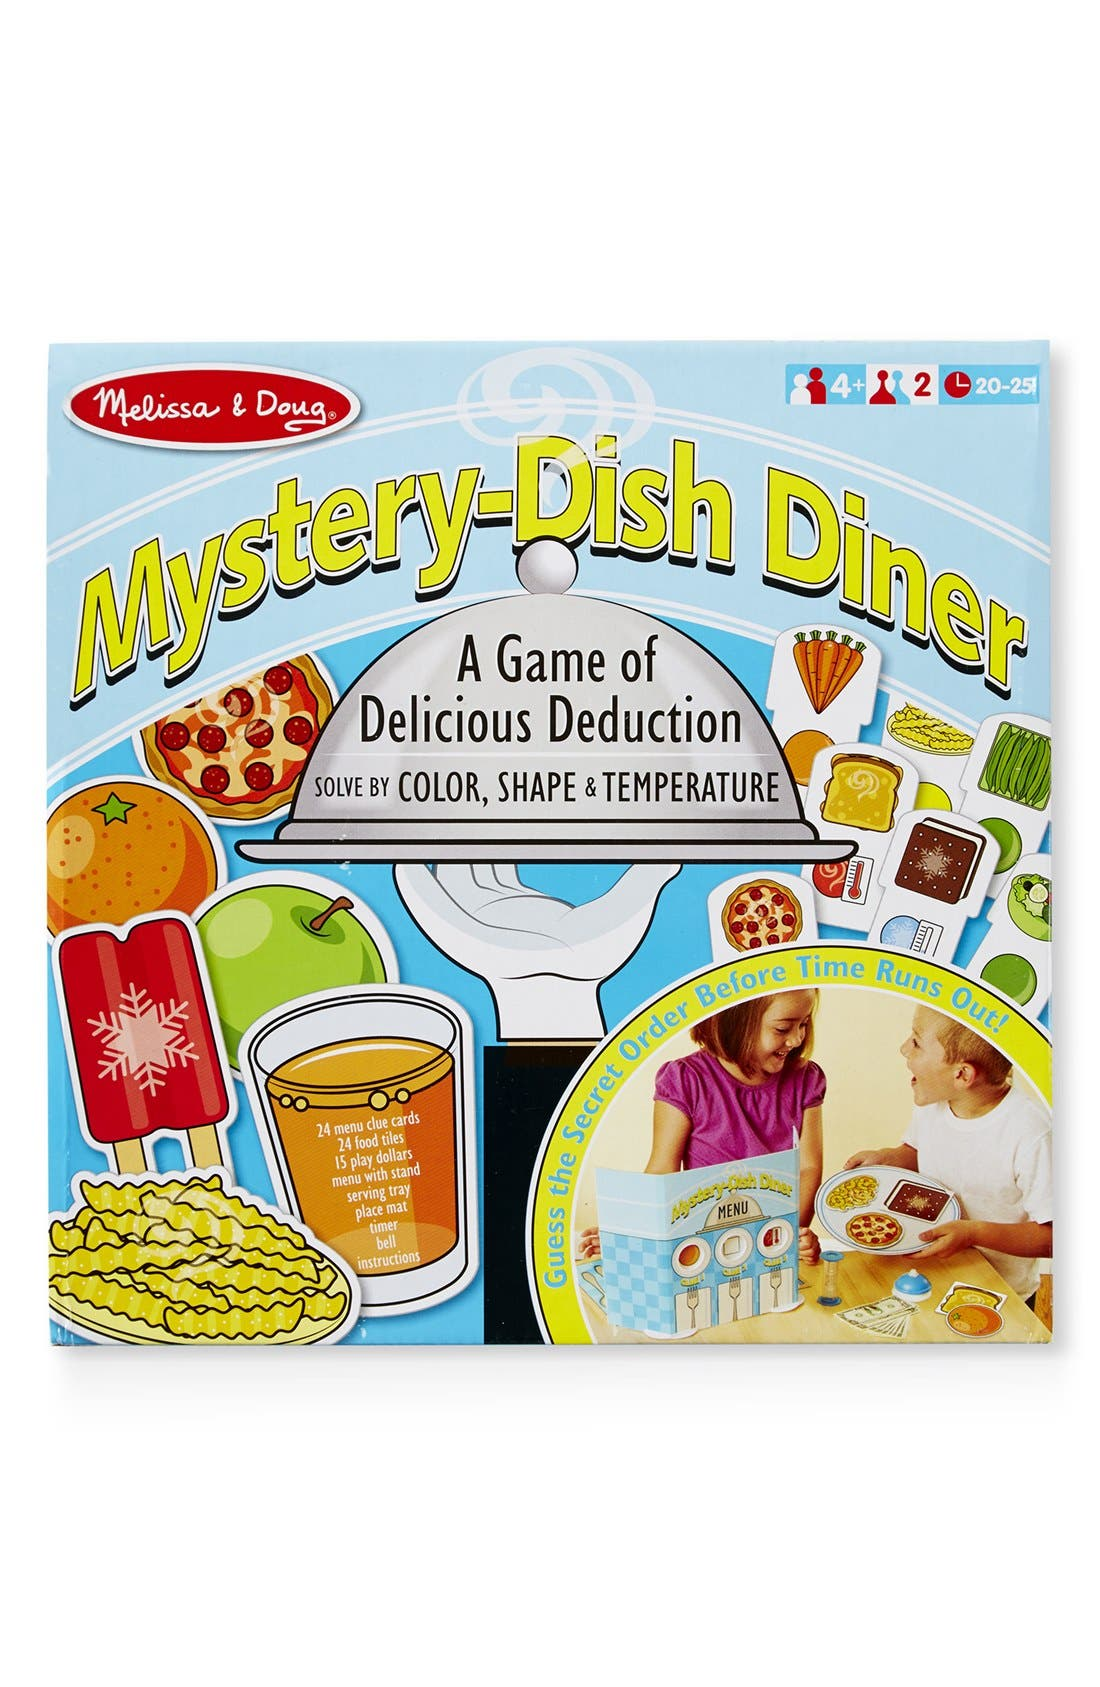 Melissa & Doug 'Mystery Dish Diner' Game